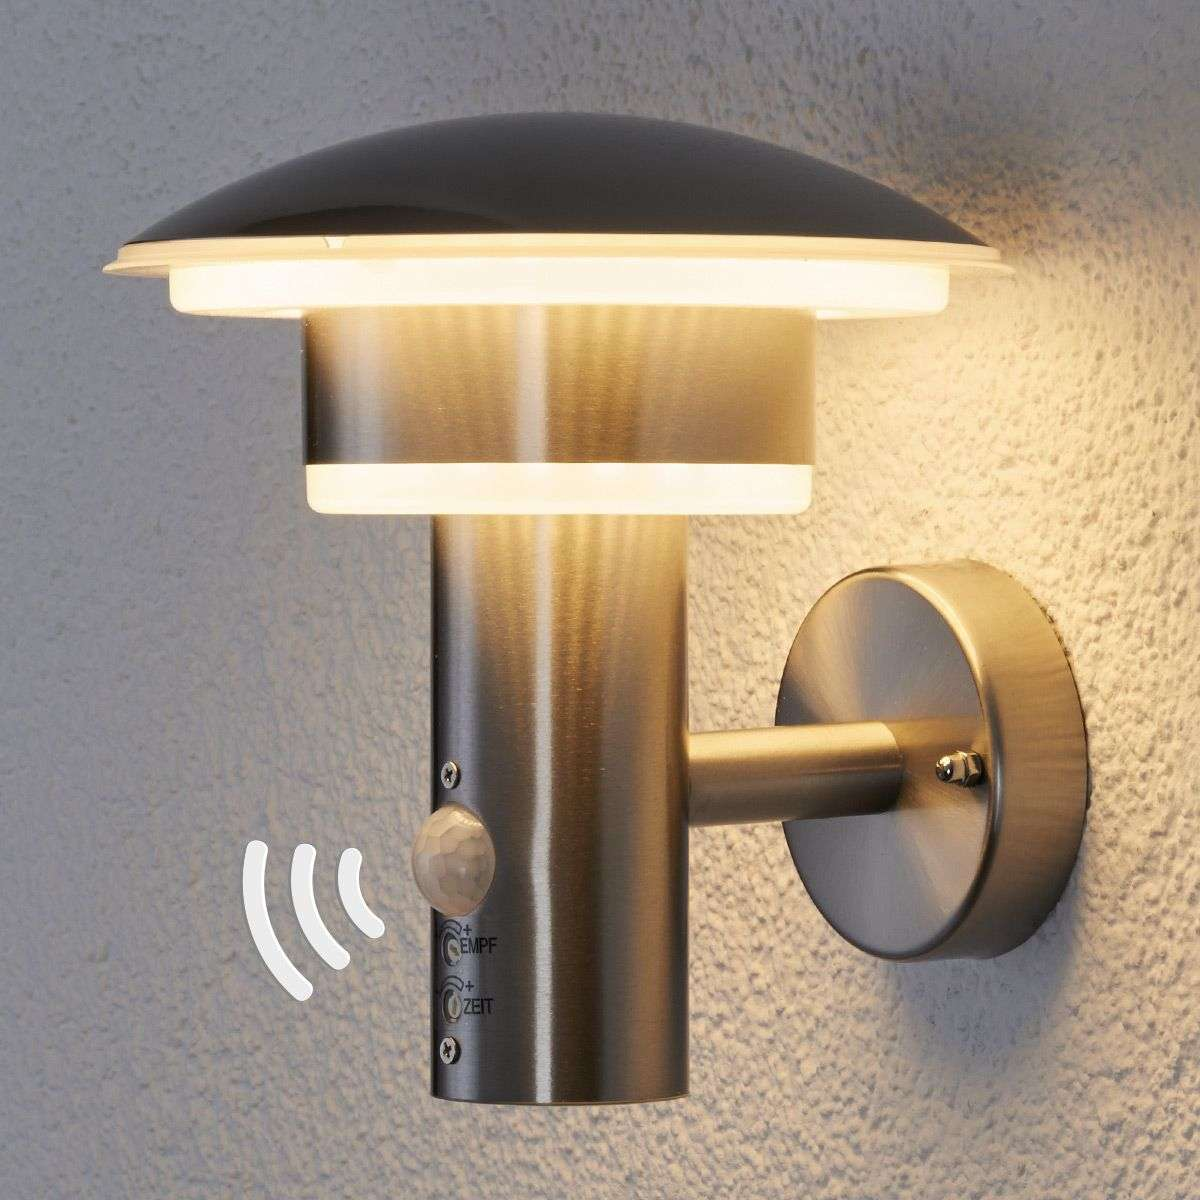 Pir outdoor wall light lillie with leds lights pir outdoor wall light lillie with leds mozeypictures Images